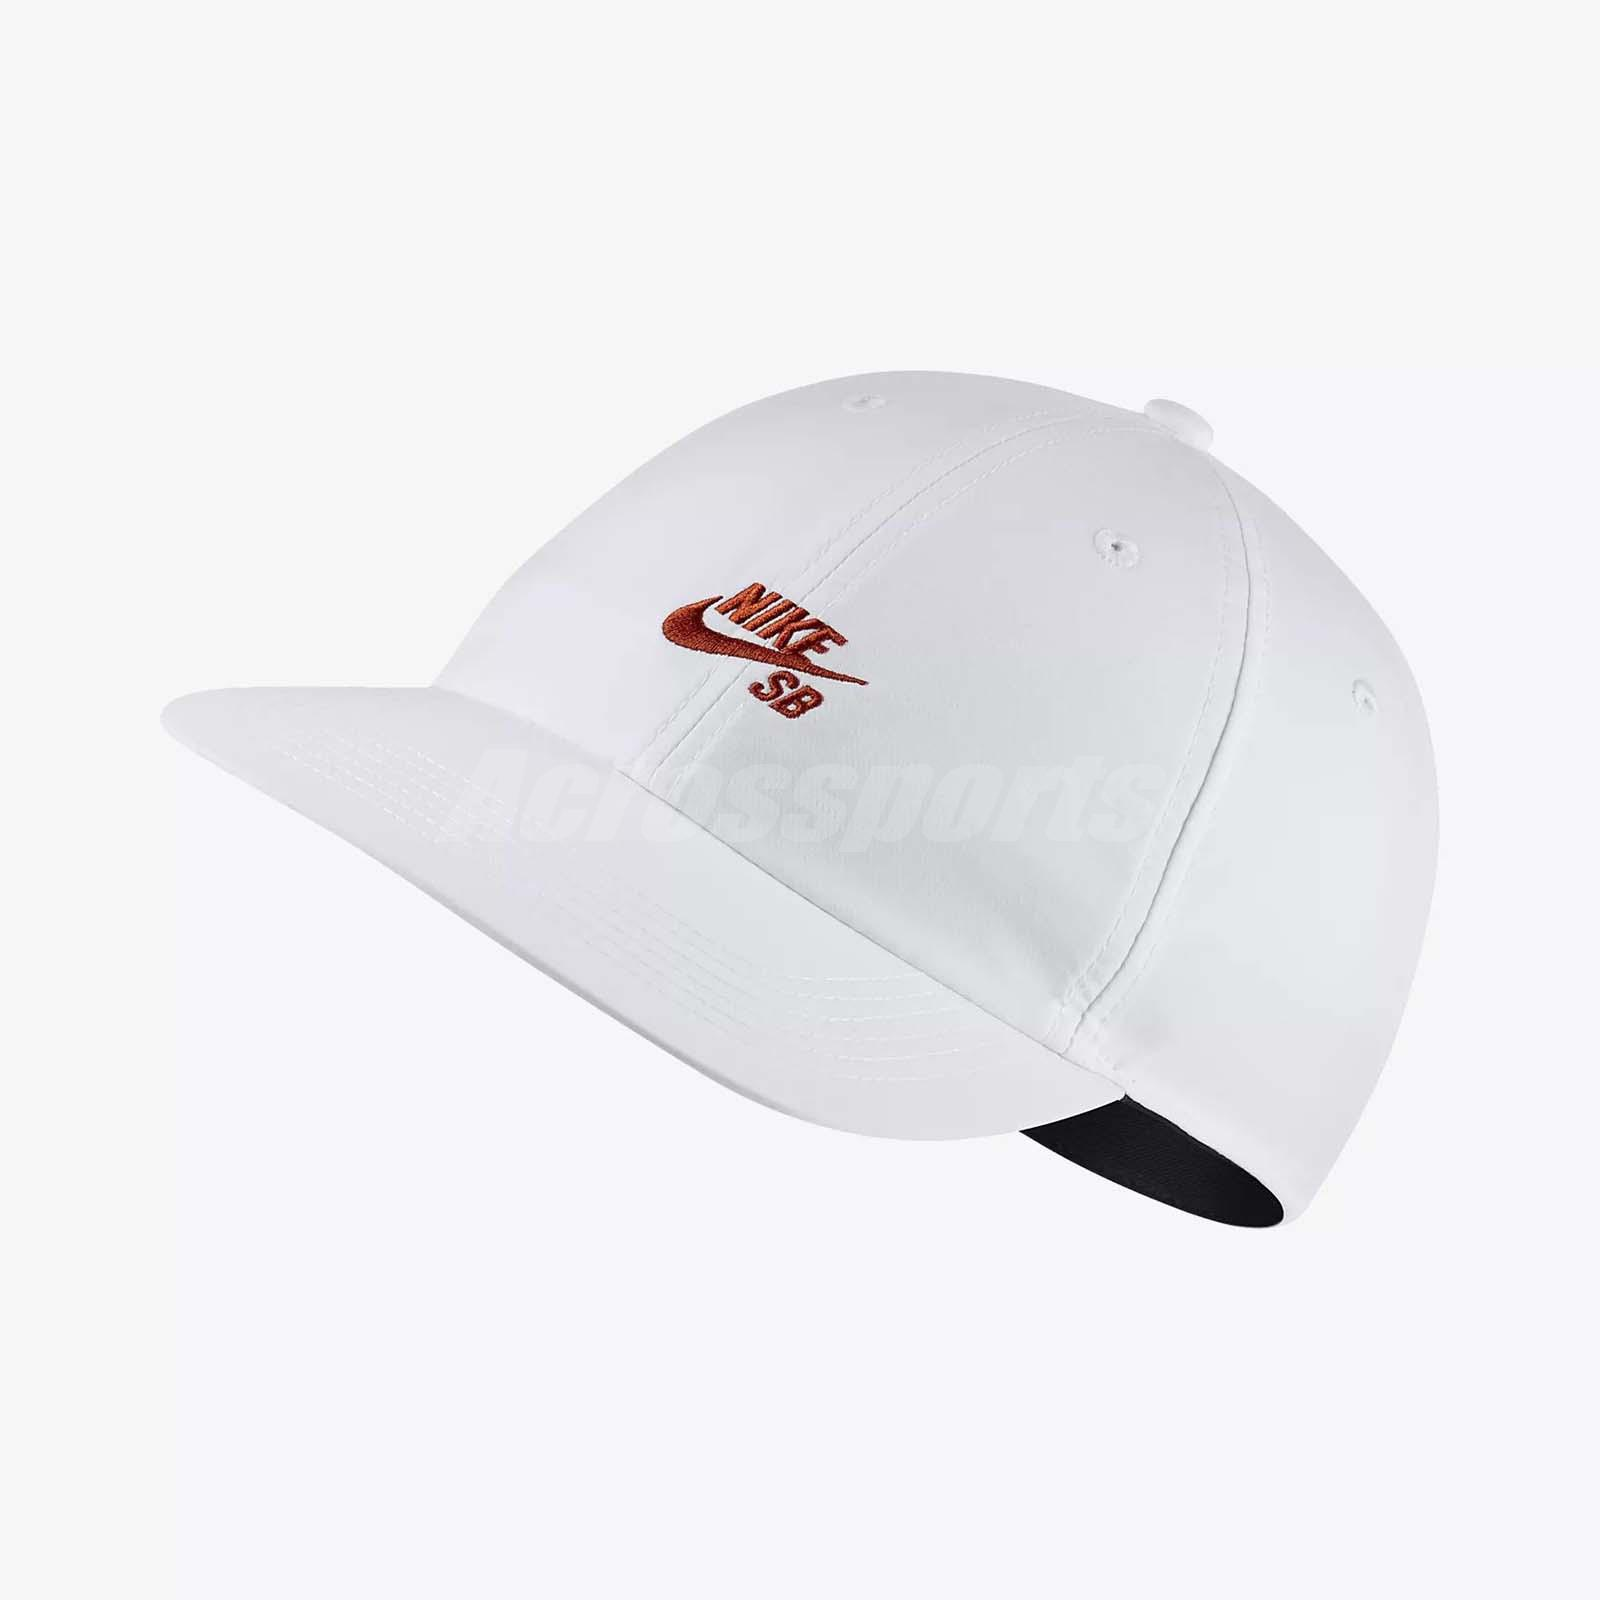 87608e9a324 Nike SB Heritage 86 Adjustable Hat H86 Cap Skateboarding Sports White  926686-100